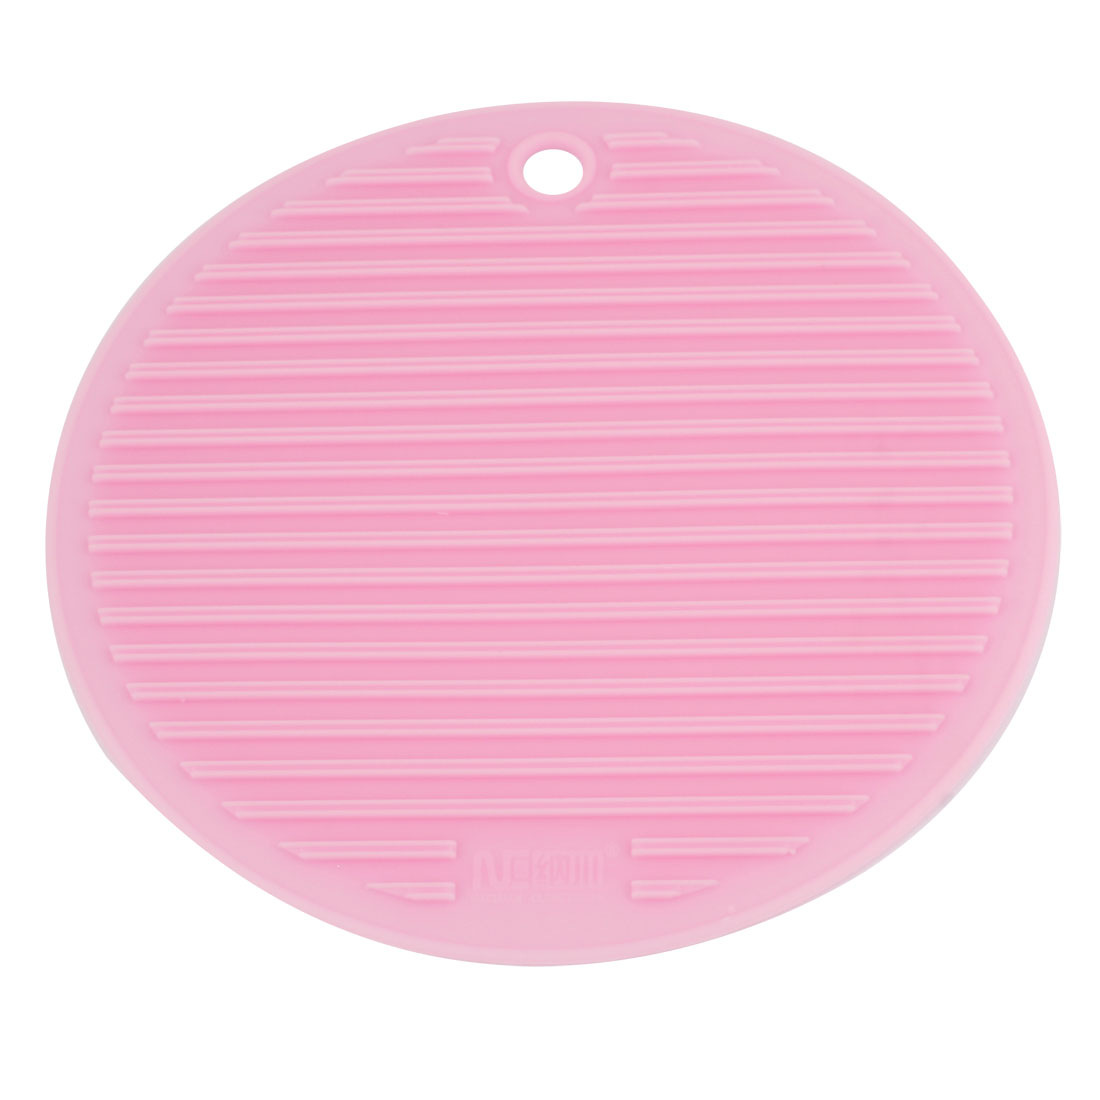 17.5cm Dia Round Pink Rubber Stripes Nonslip Bowl Cup Mat Coaster Pat